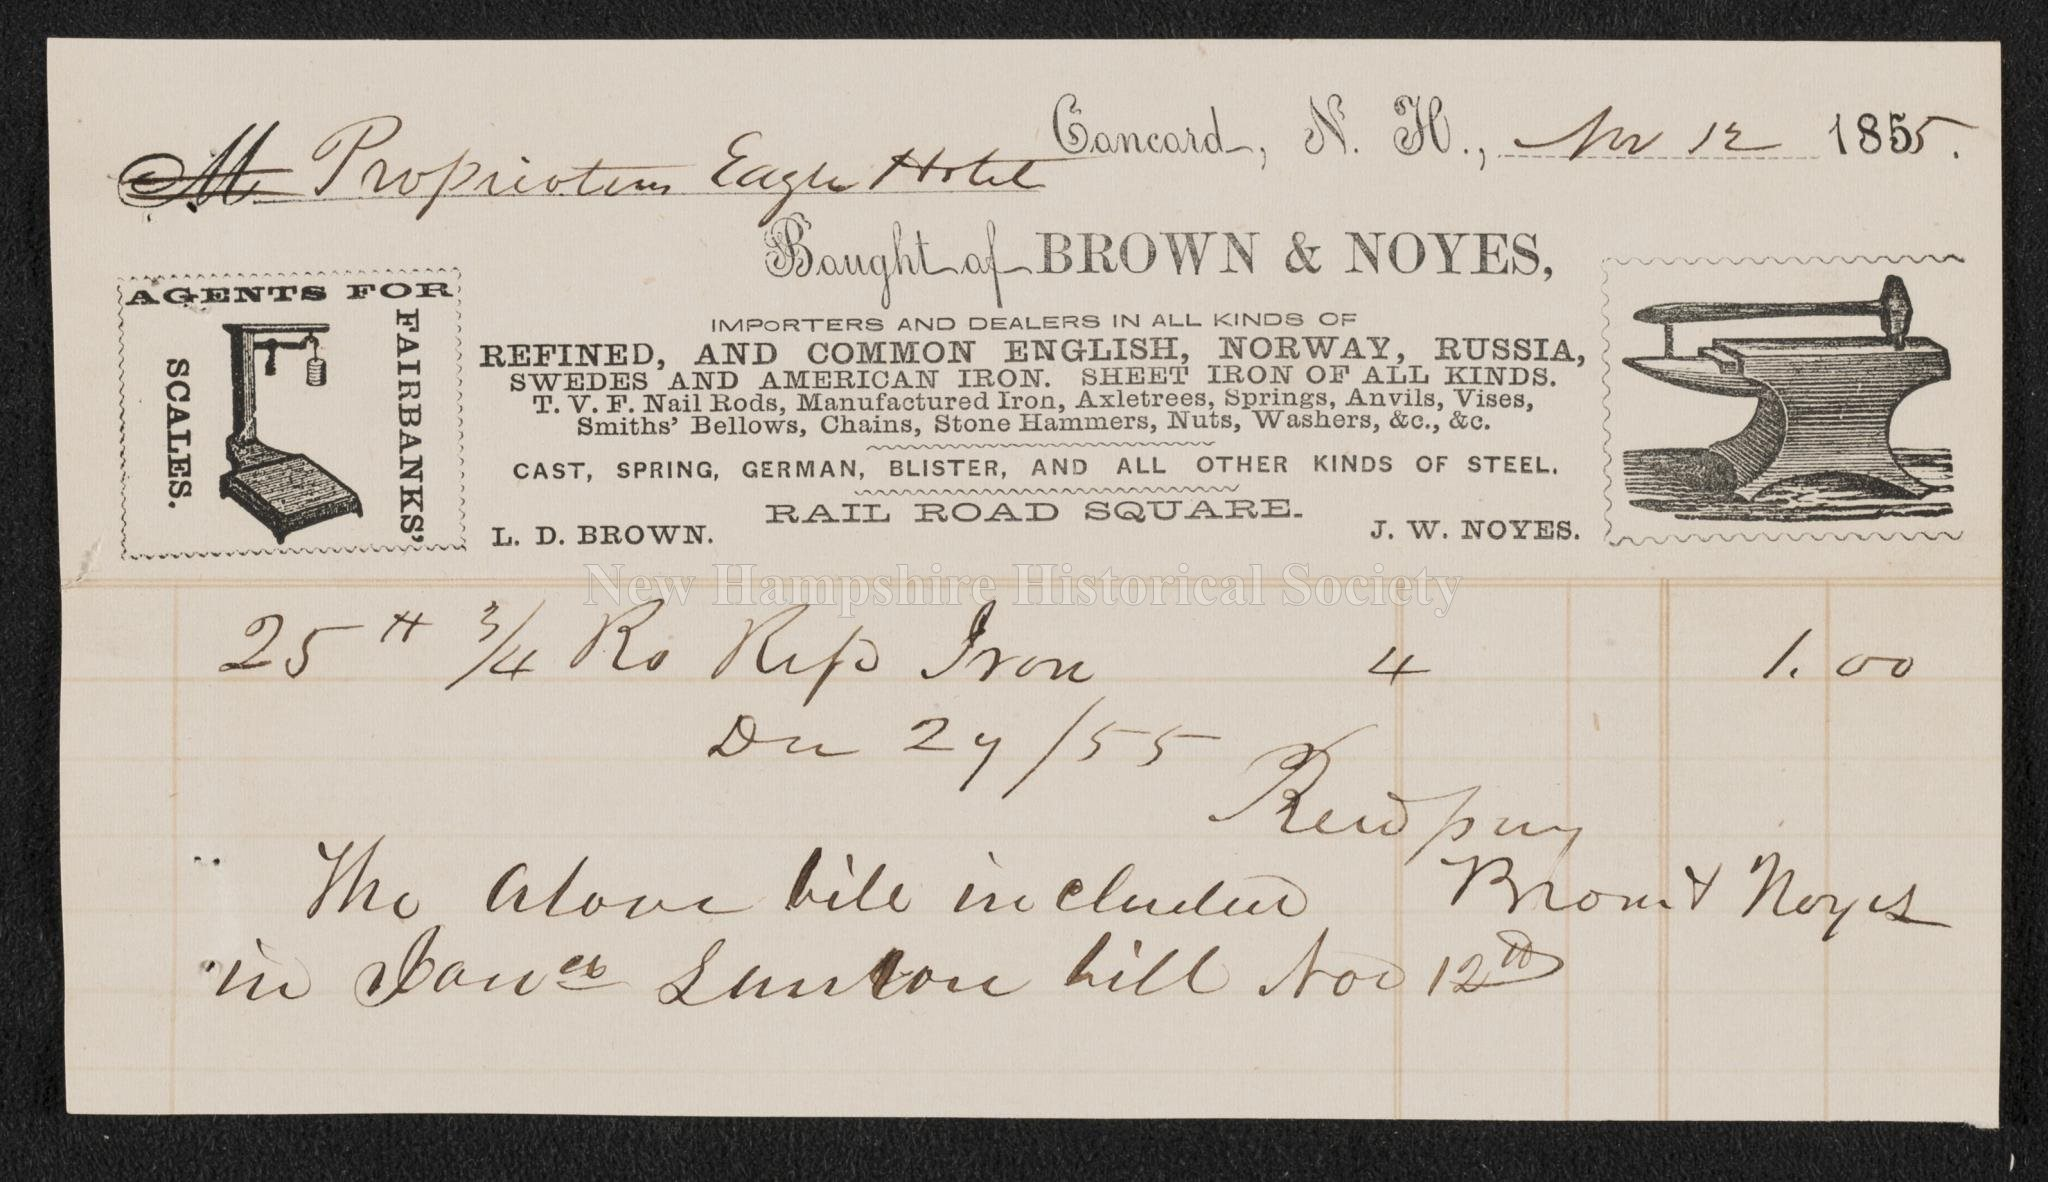 New Hampshire Historical Society - Receipt from Brown